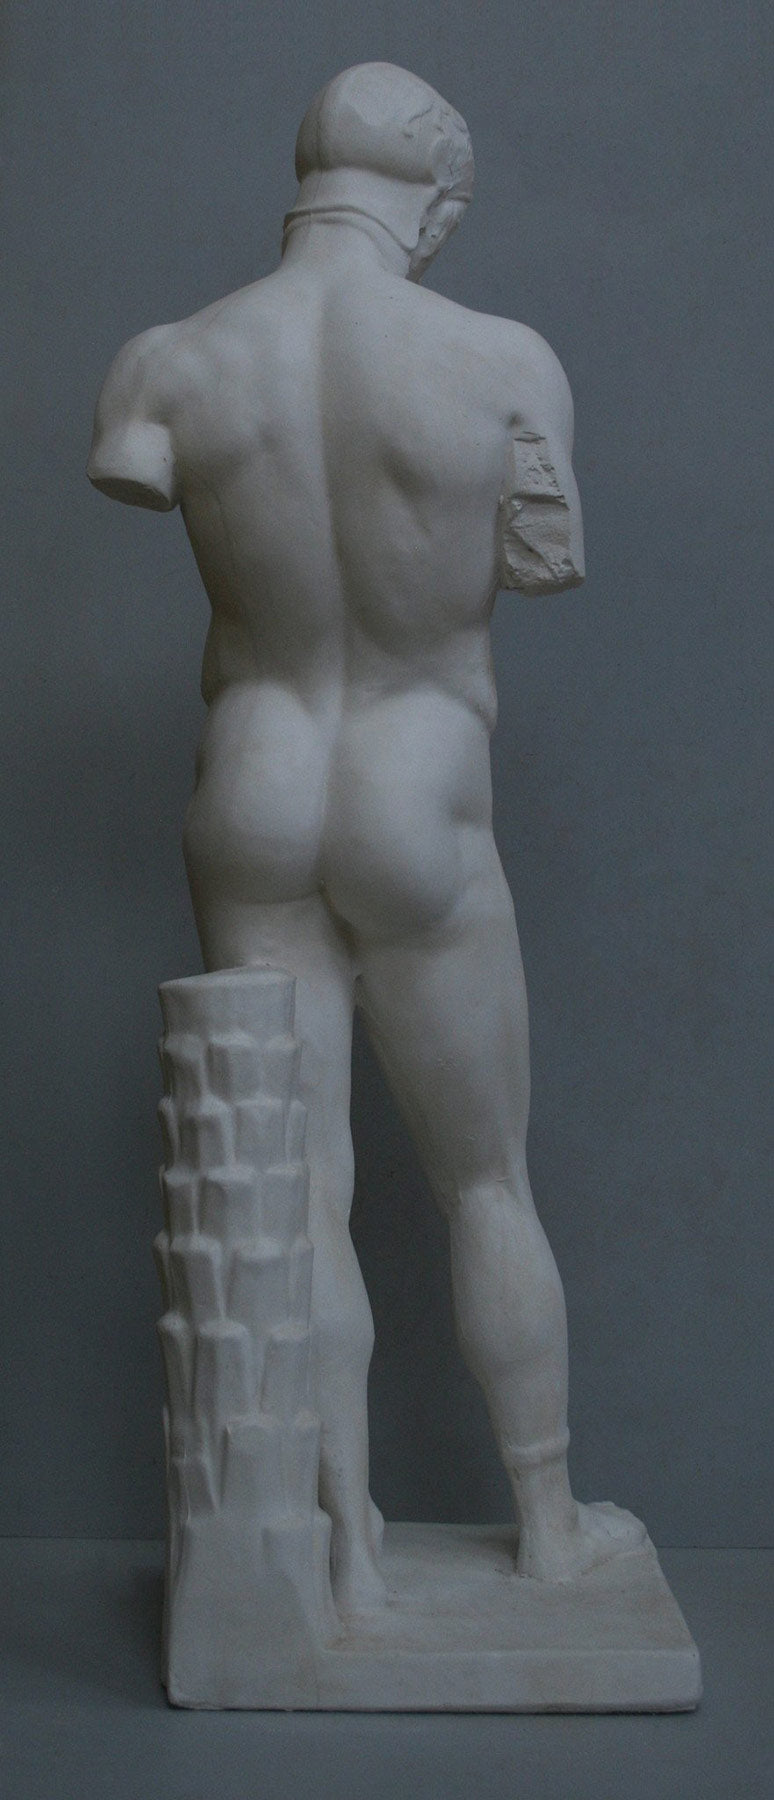 photo of back of plaster cast of sculpture of nude male without arms and wearing a helmet with a supporting tree trunk, on a gray background